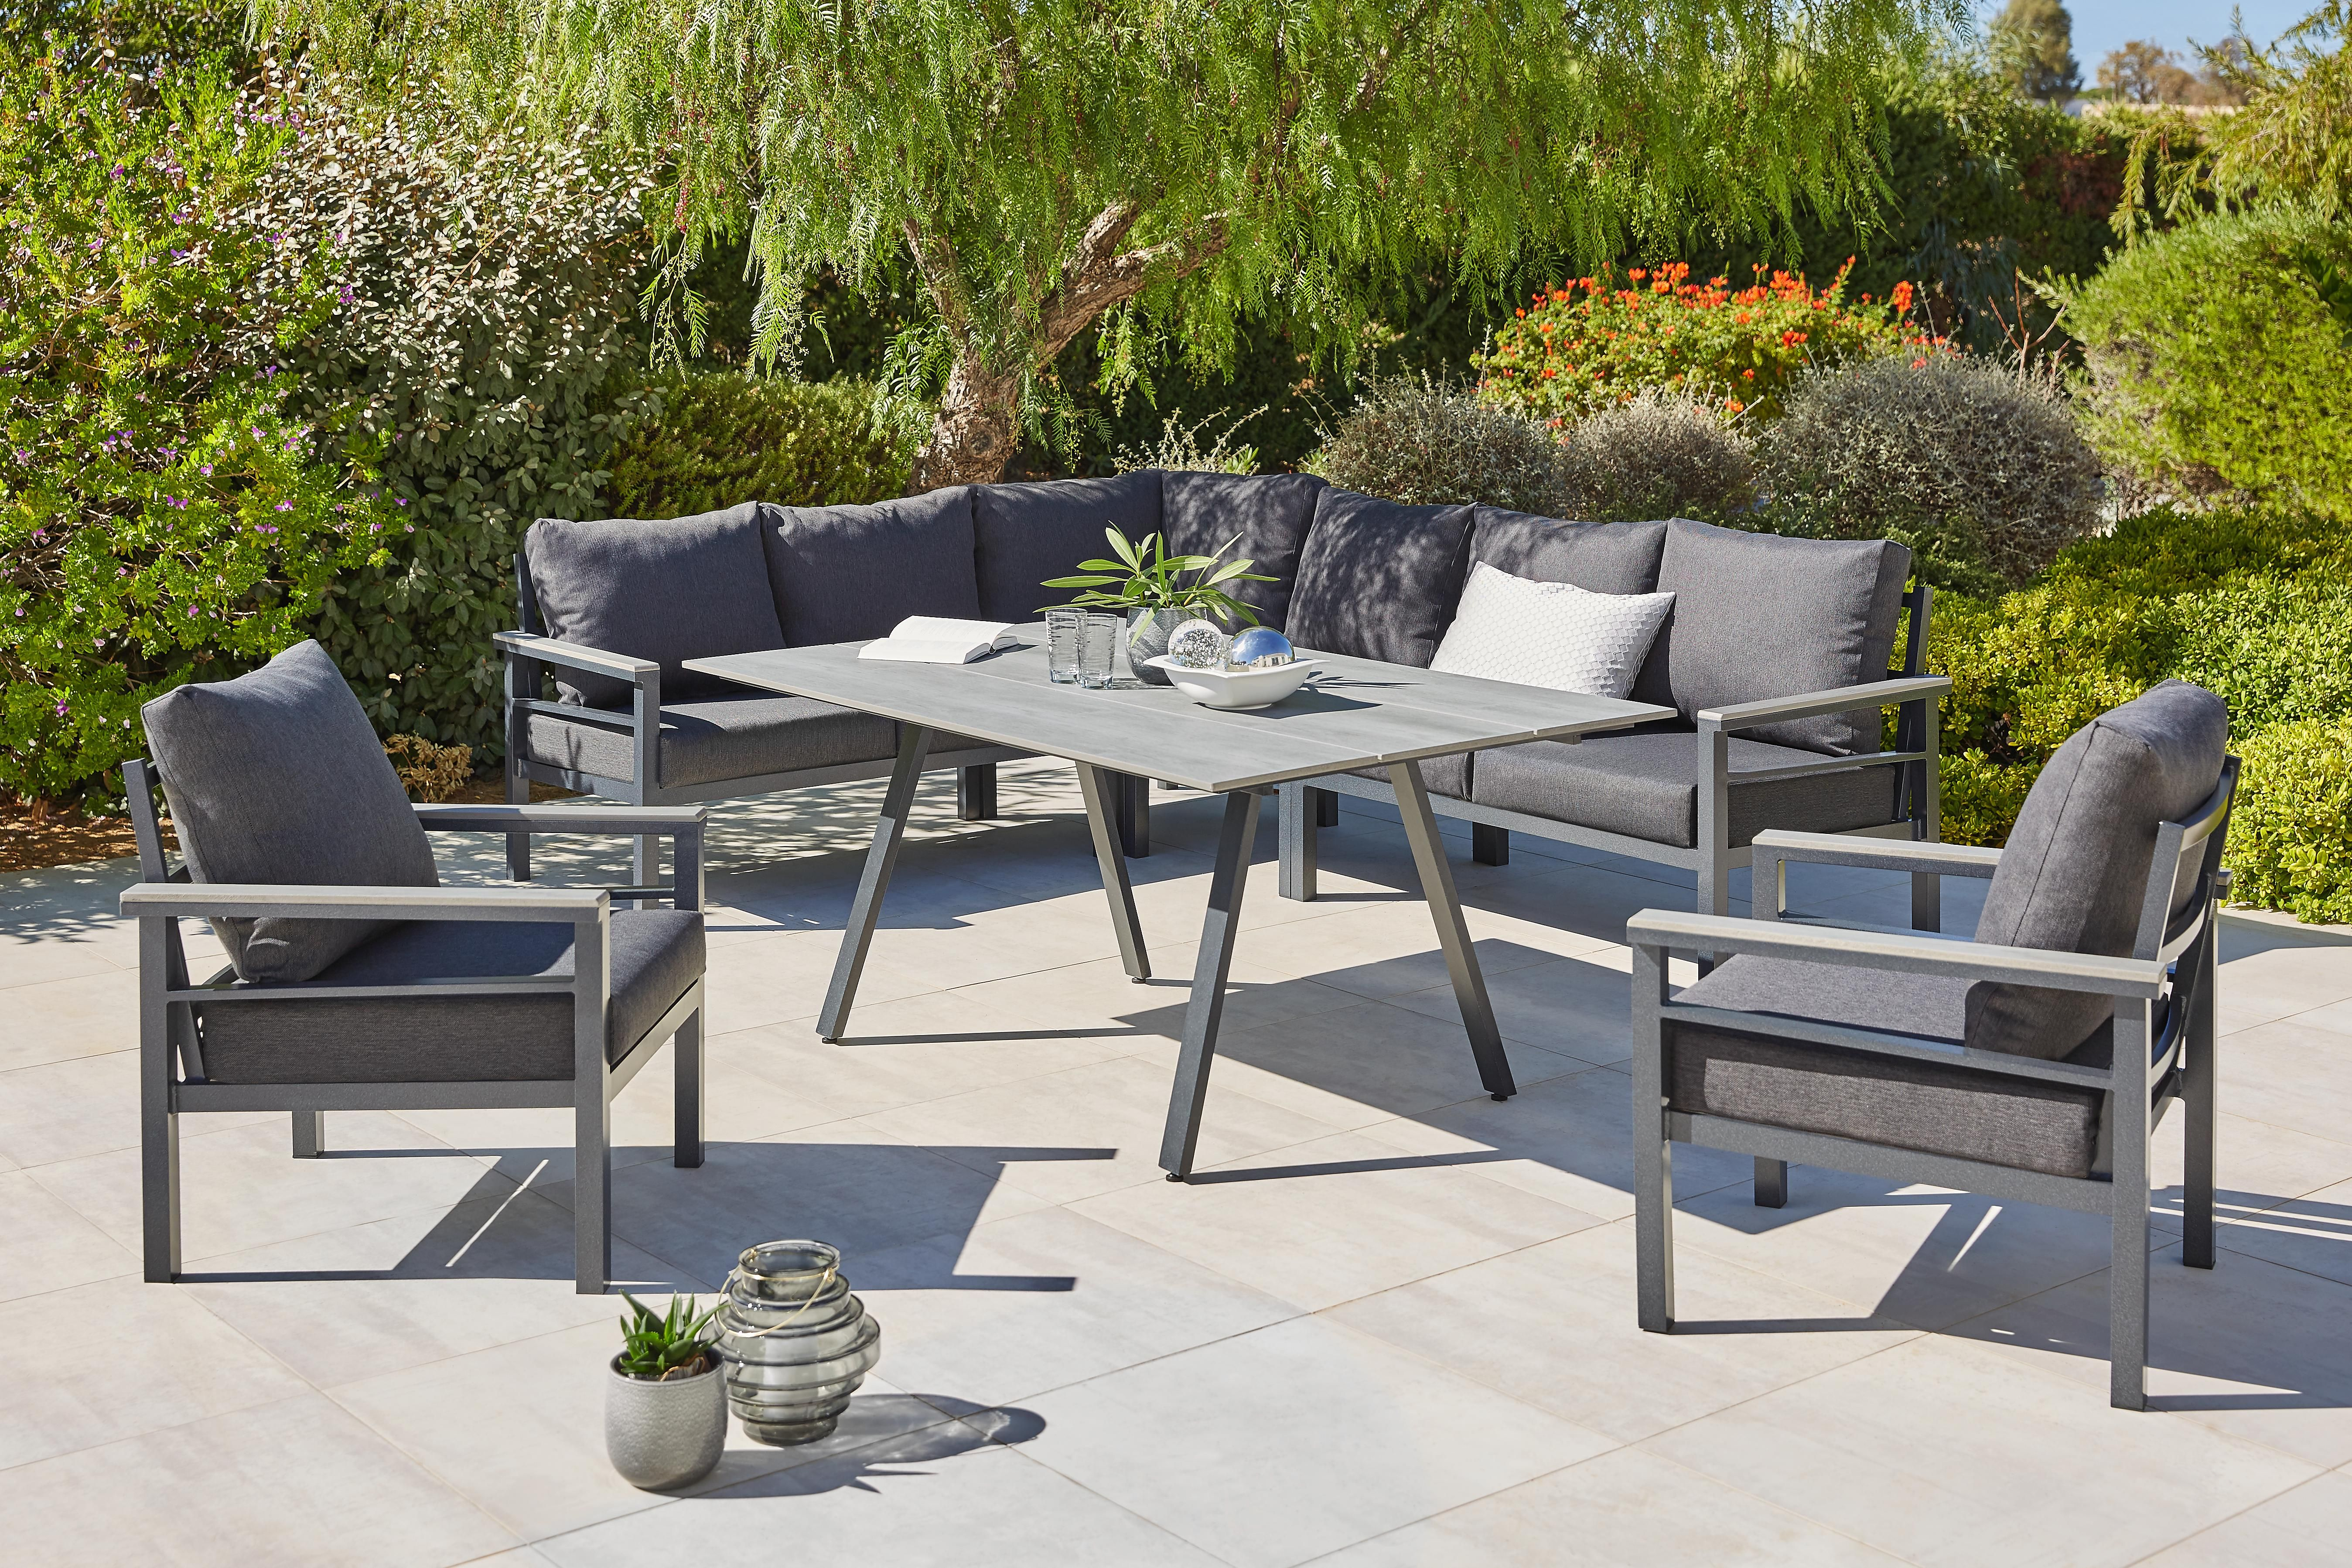 Dining Loungeset 5 Teilig 259 199 Cm In 2020 Garten Lounge Lounge Garnitur Lounge